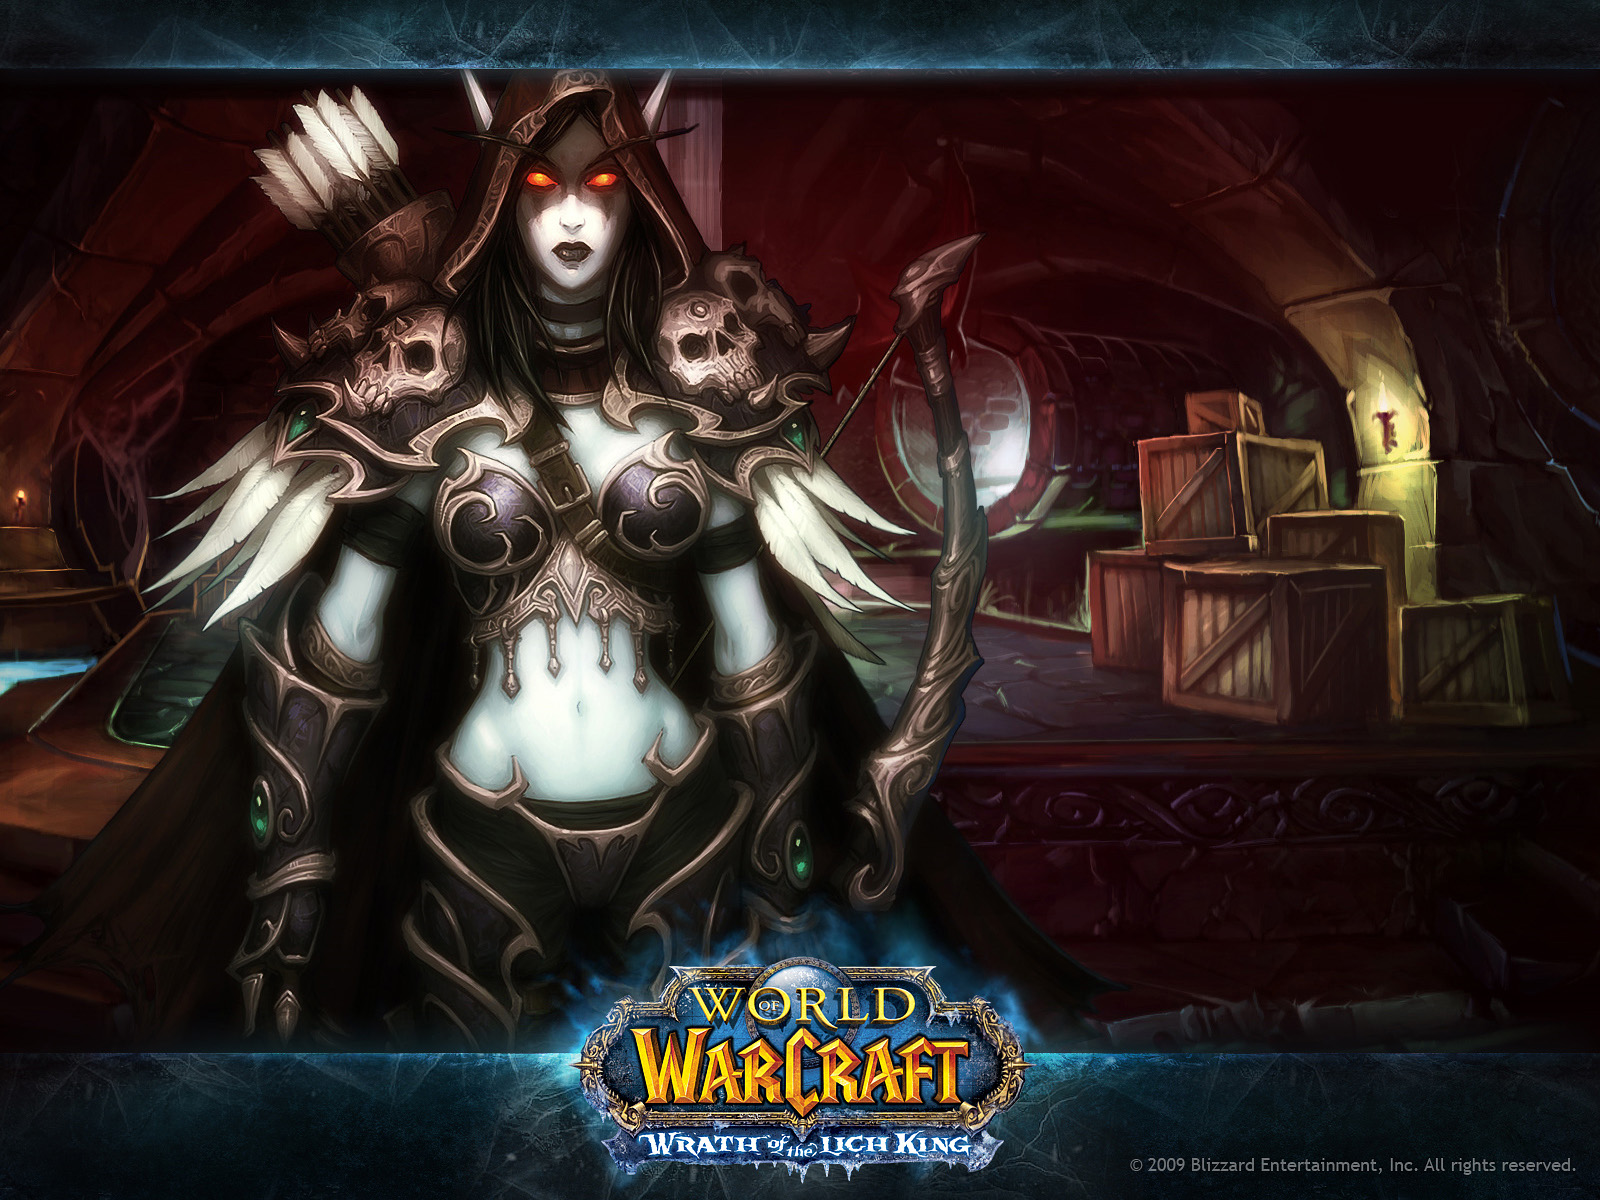 download World of Warcraft Background and PostersHope you like this 1600x1200